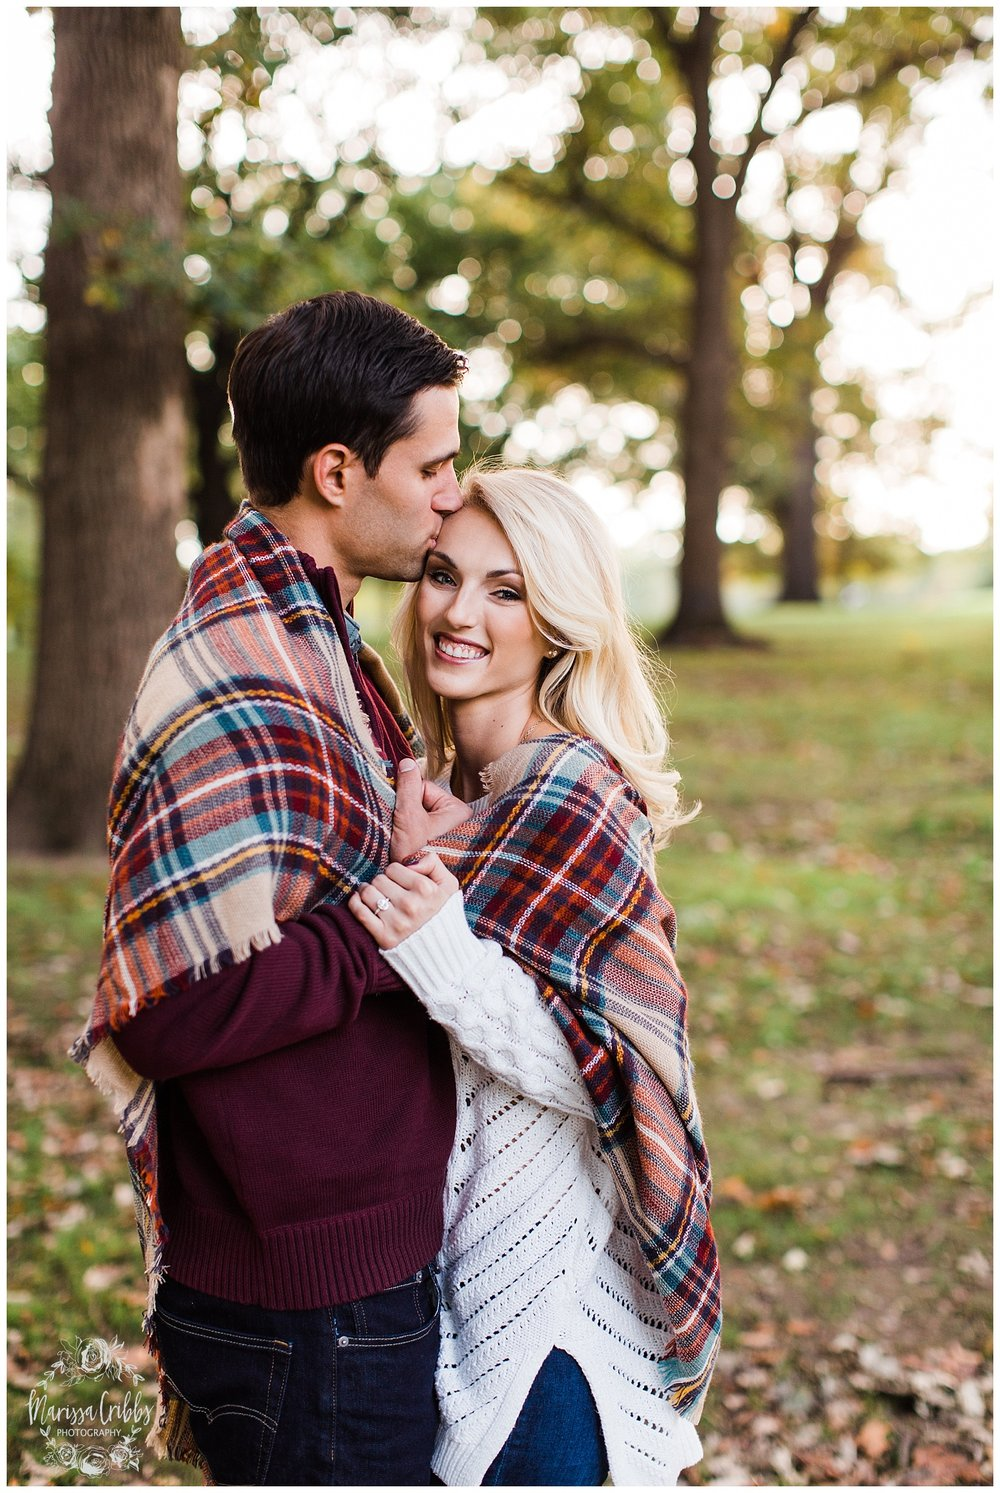 CLOE & GABE LIBERTY MEMORIAL ENGAGEMENT | MARISSA CRIBBS PHOTOGRAPHY | LOOSE PARK ENGAGEMENT_3462.jpg